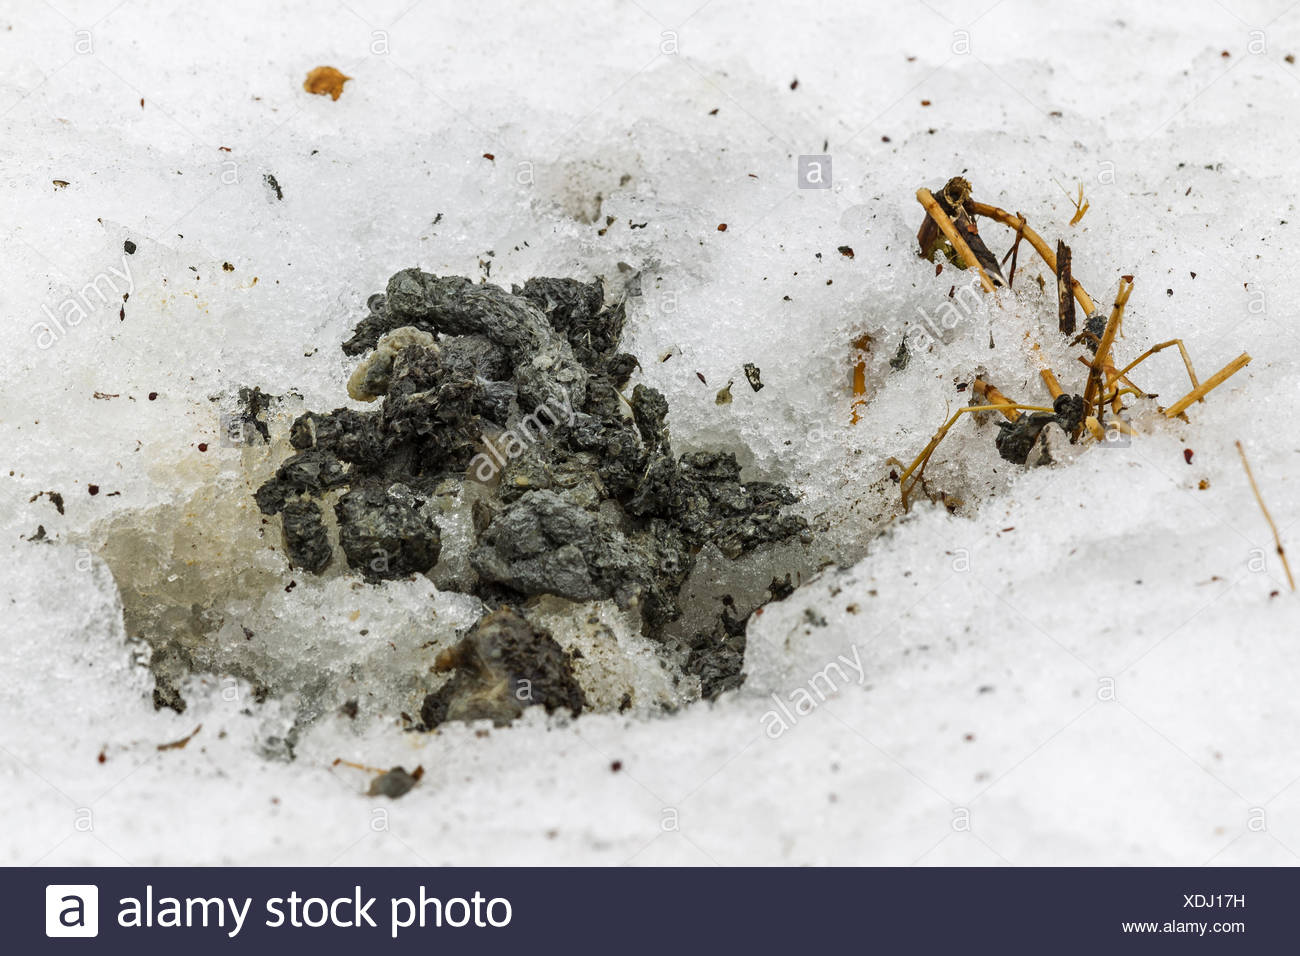 American Mink (Neovison vison, Mustela vison),  droppings with typical scales of a fish  in snow - Stock Image